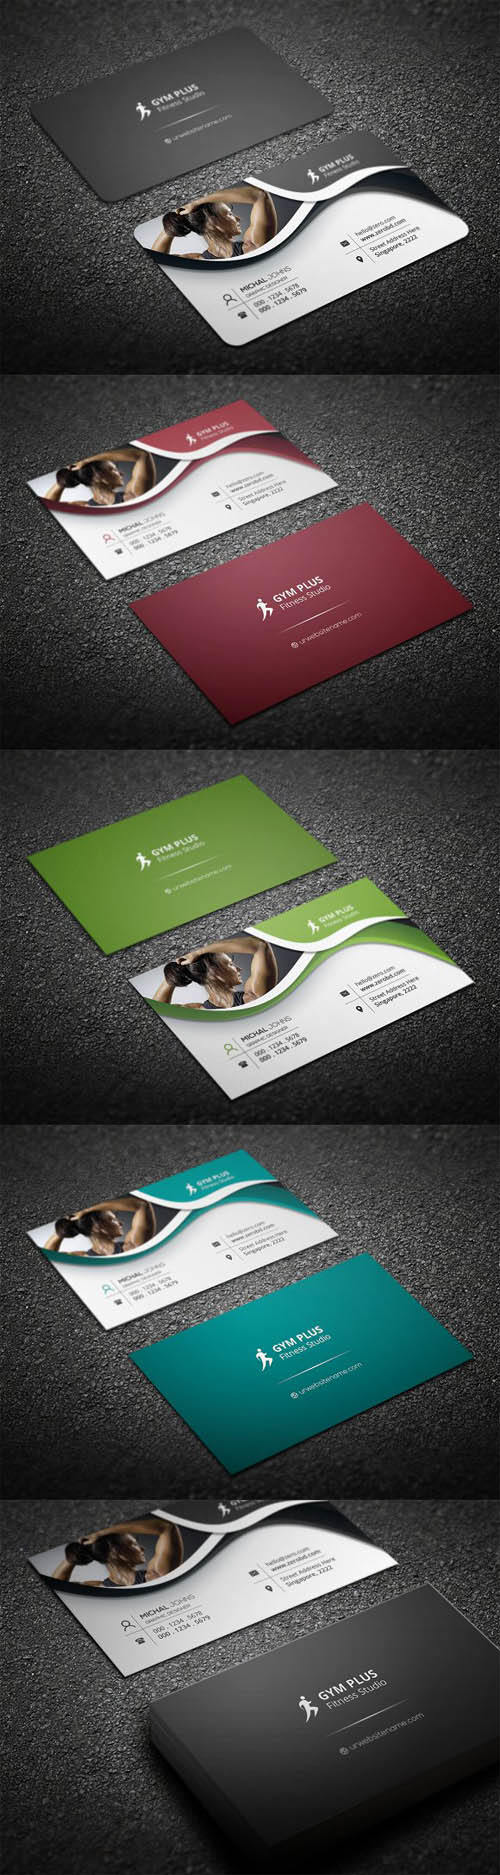 Gym Fitness Business Card 1338388